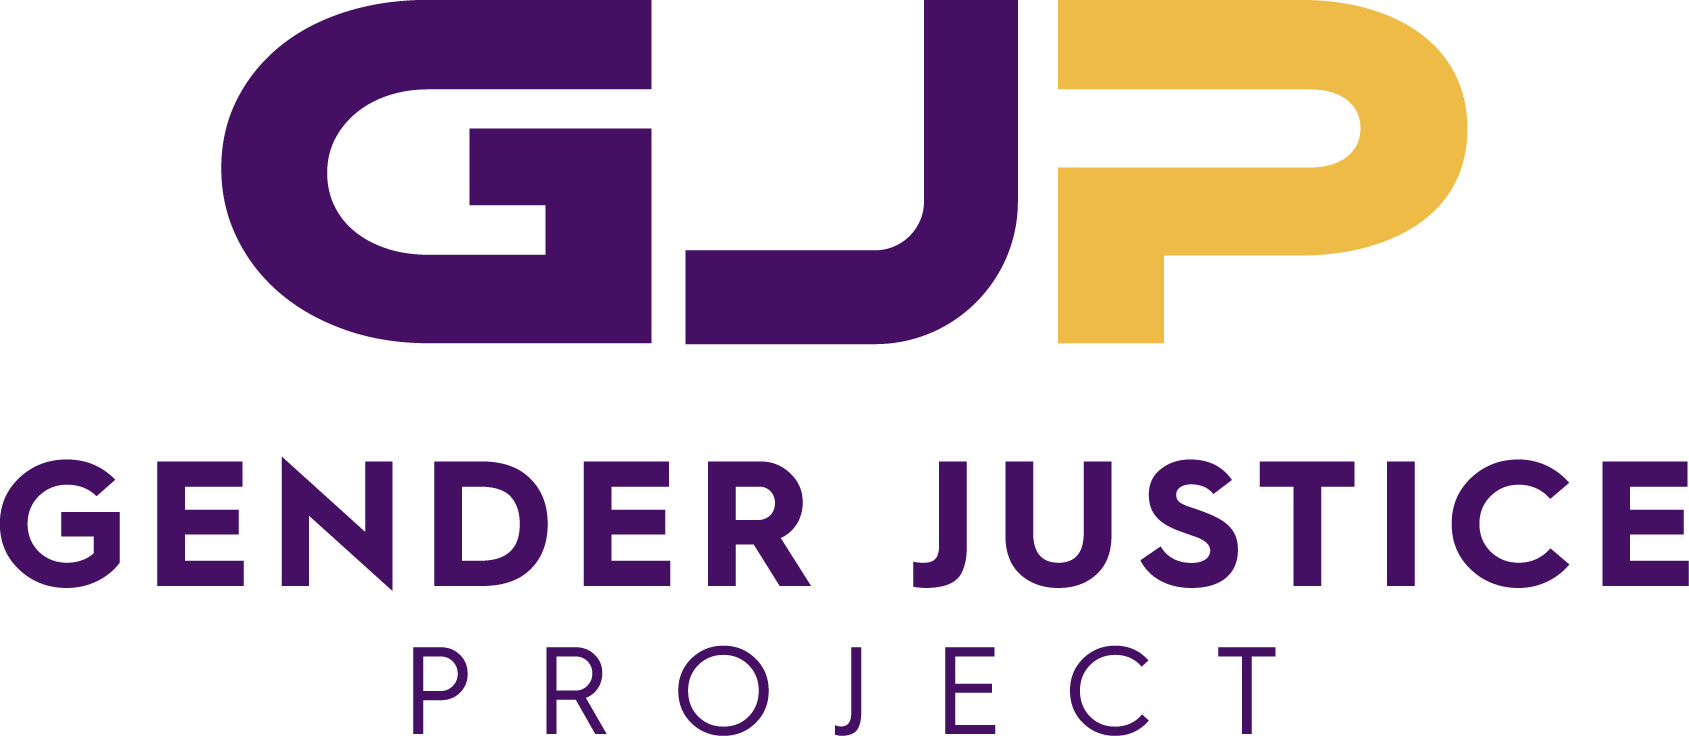 Gender Justice Project